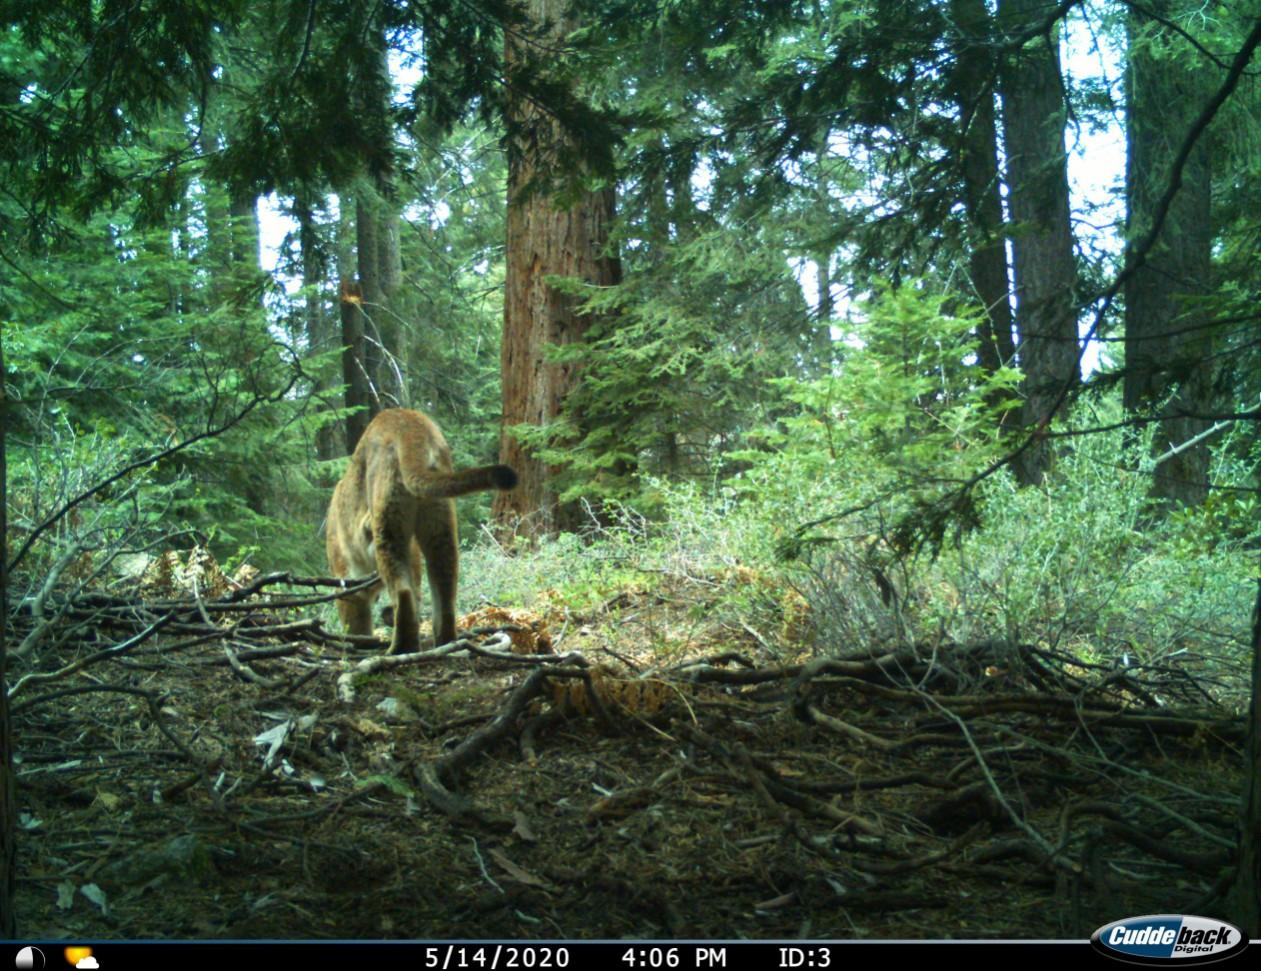 A wildife camera trap catches a glimpse of a mature mountain lion from behind as it makes its way through a redwood forest.